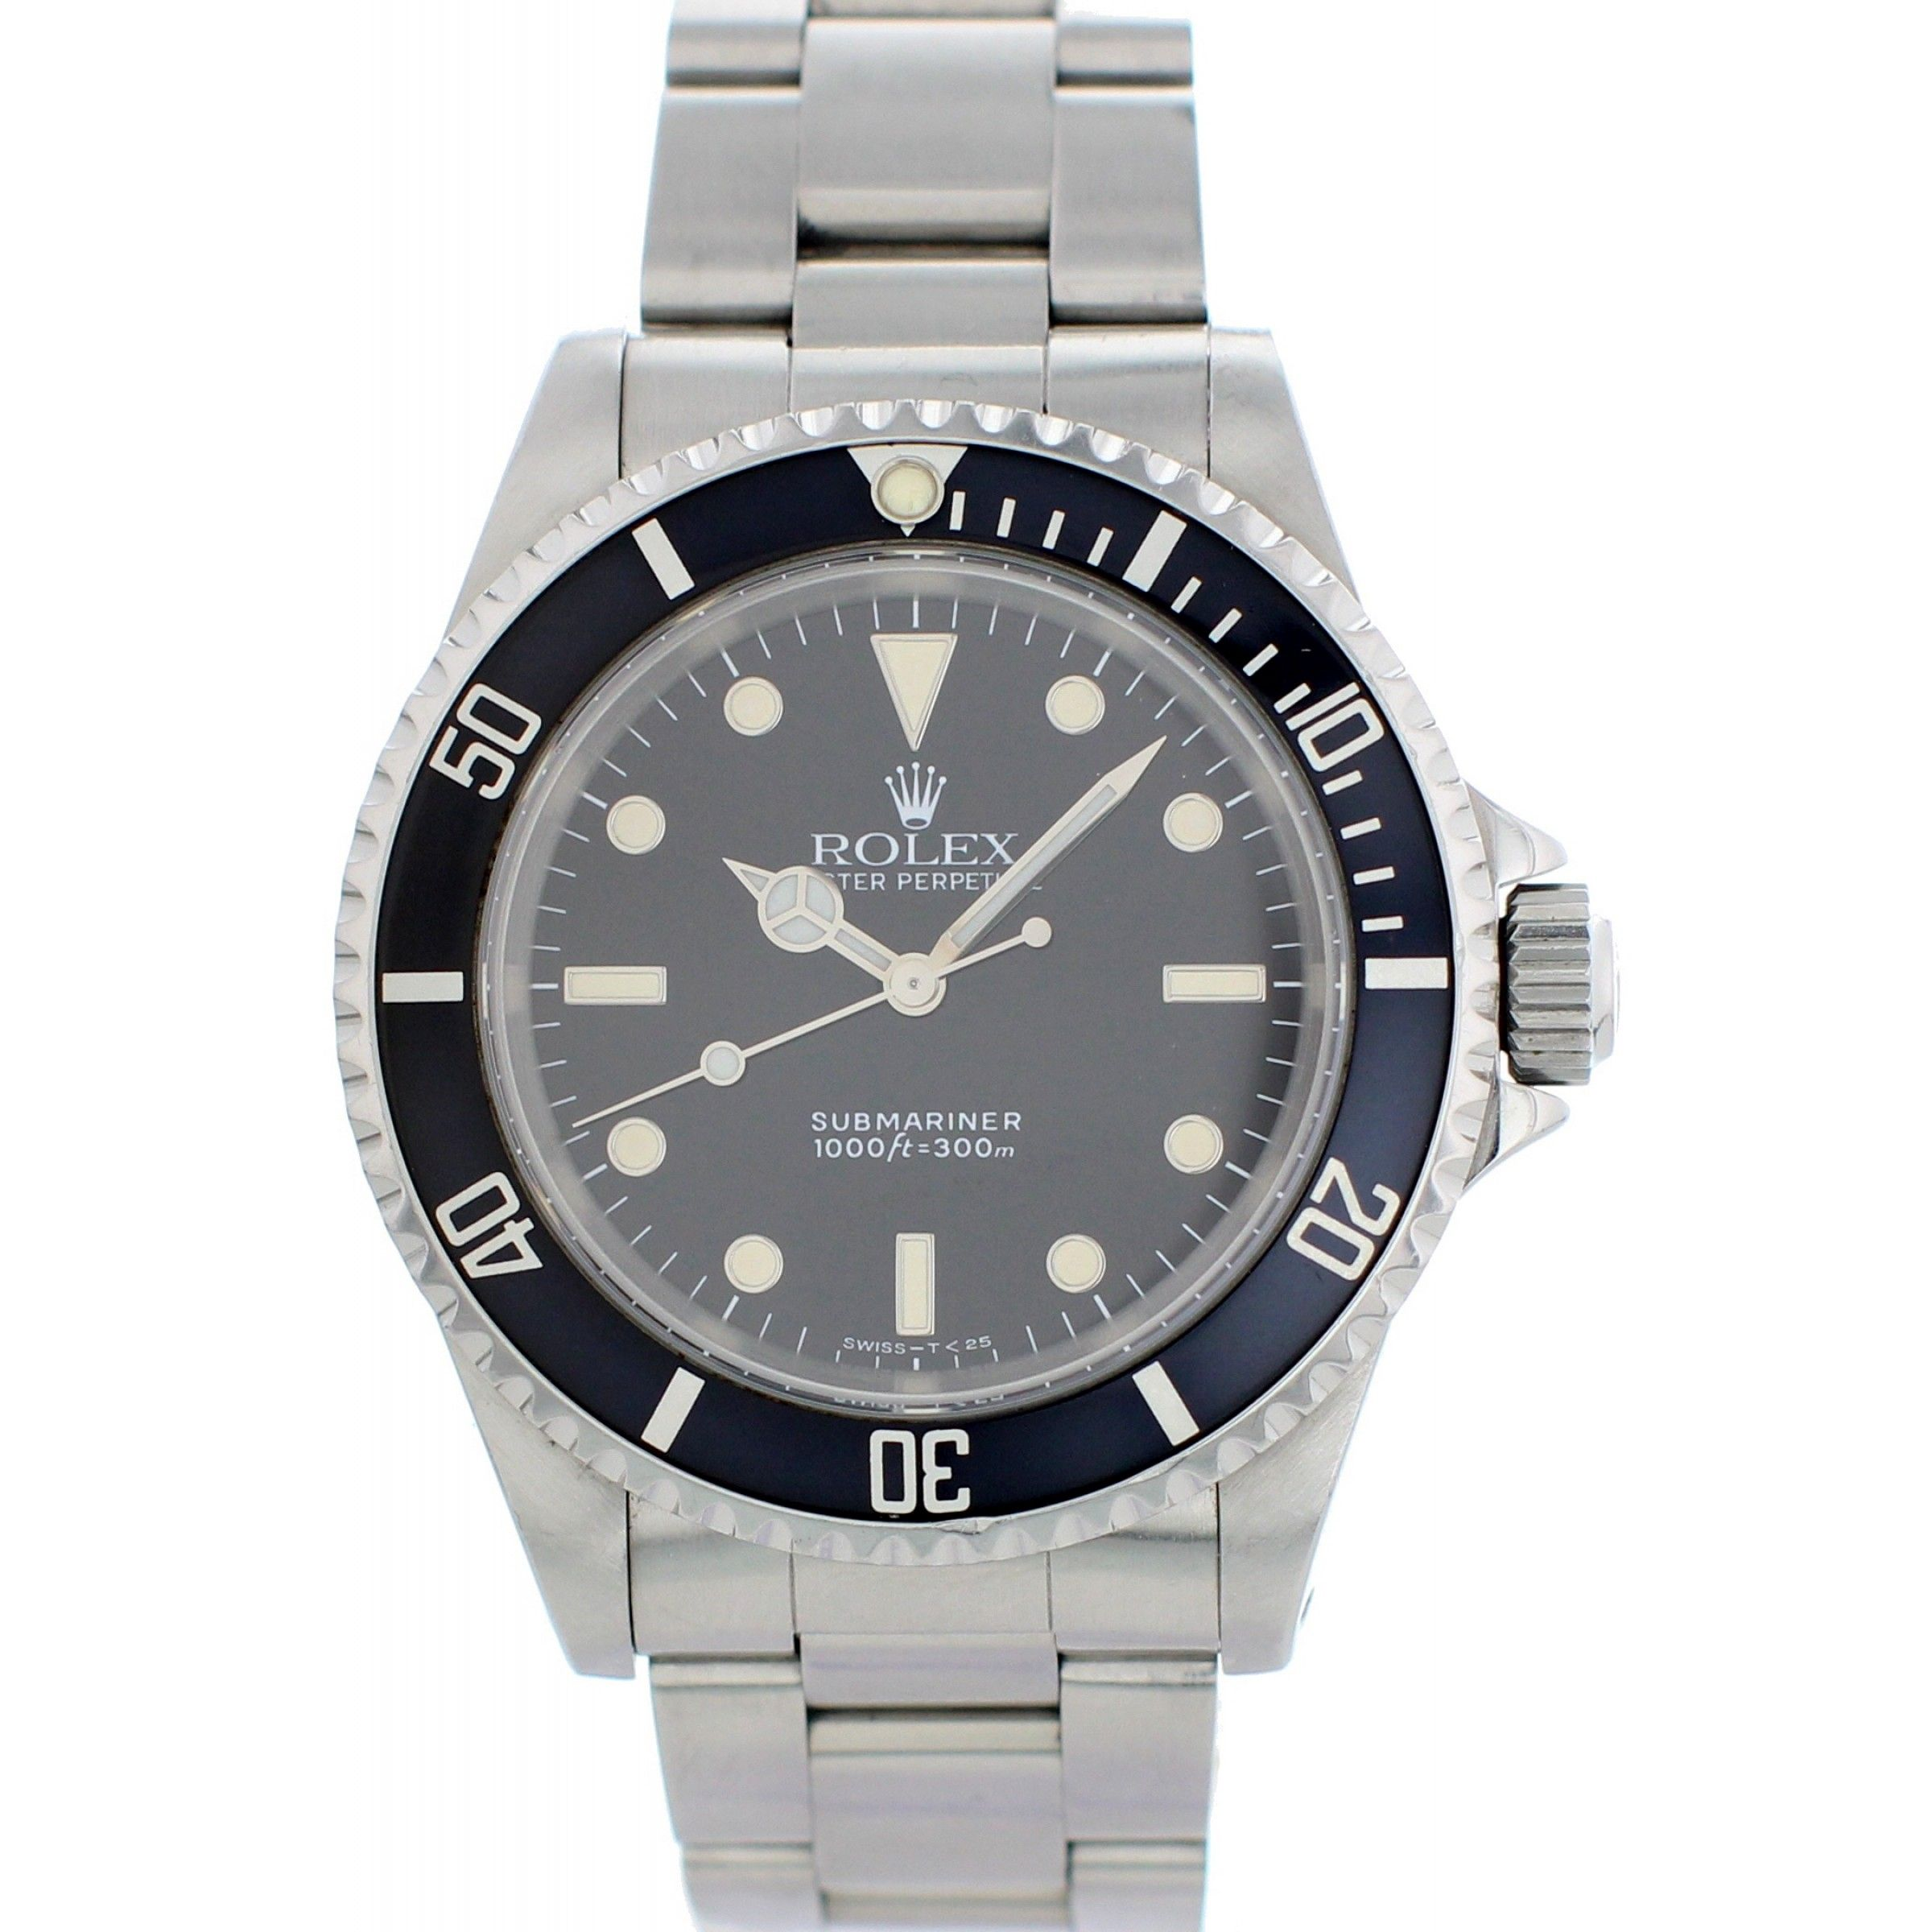 Rolex Oyster Perpetual Submariner No Date 14060 Mens Watch Rolex Watches Rolex Rolex Watches Submariner